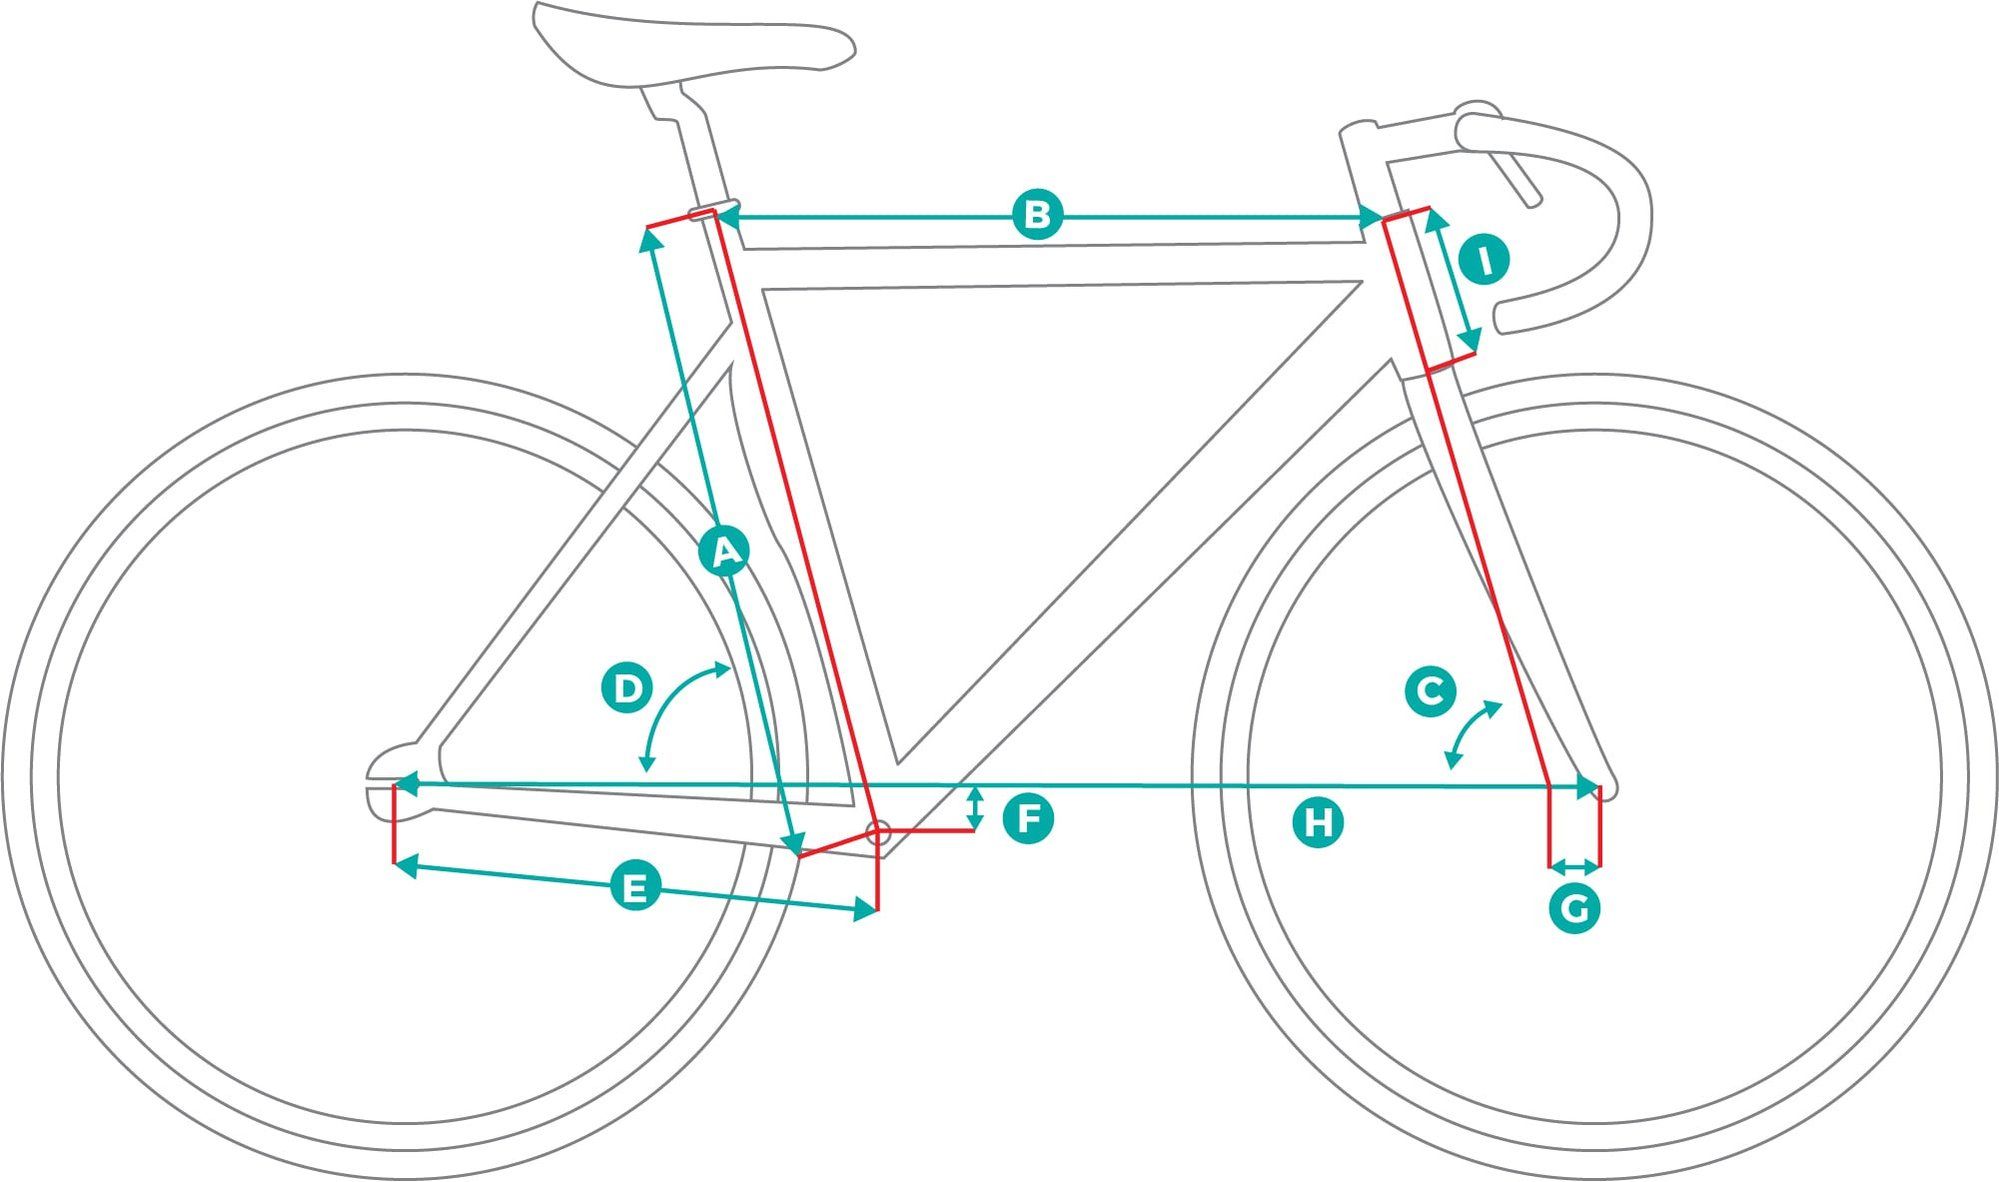 keirin-bike-geometry-2000x.jpg